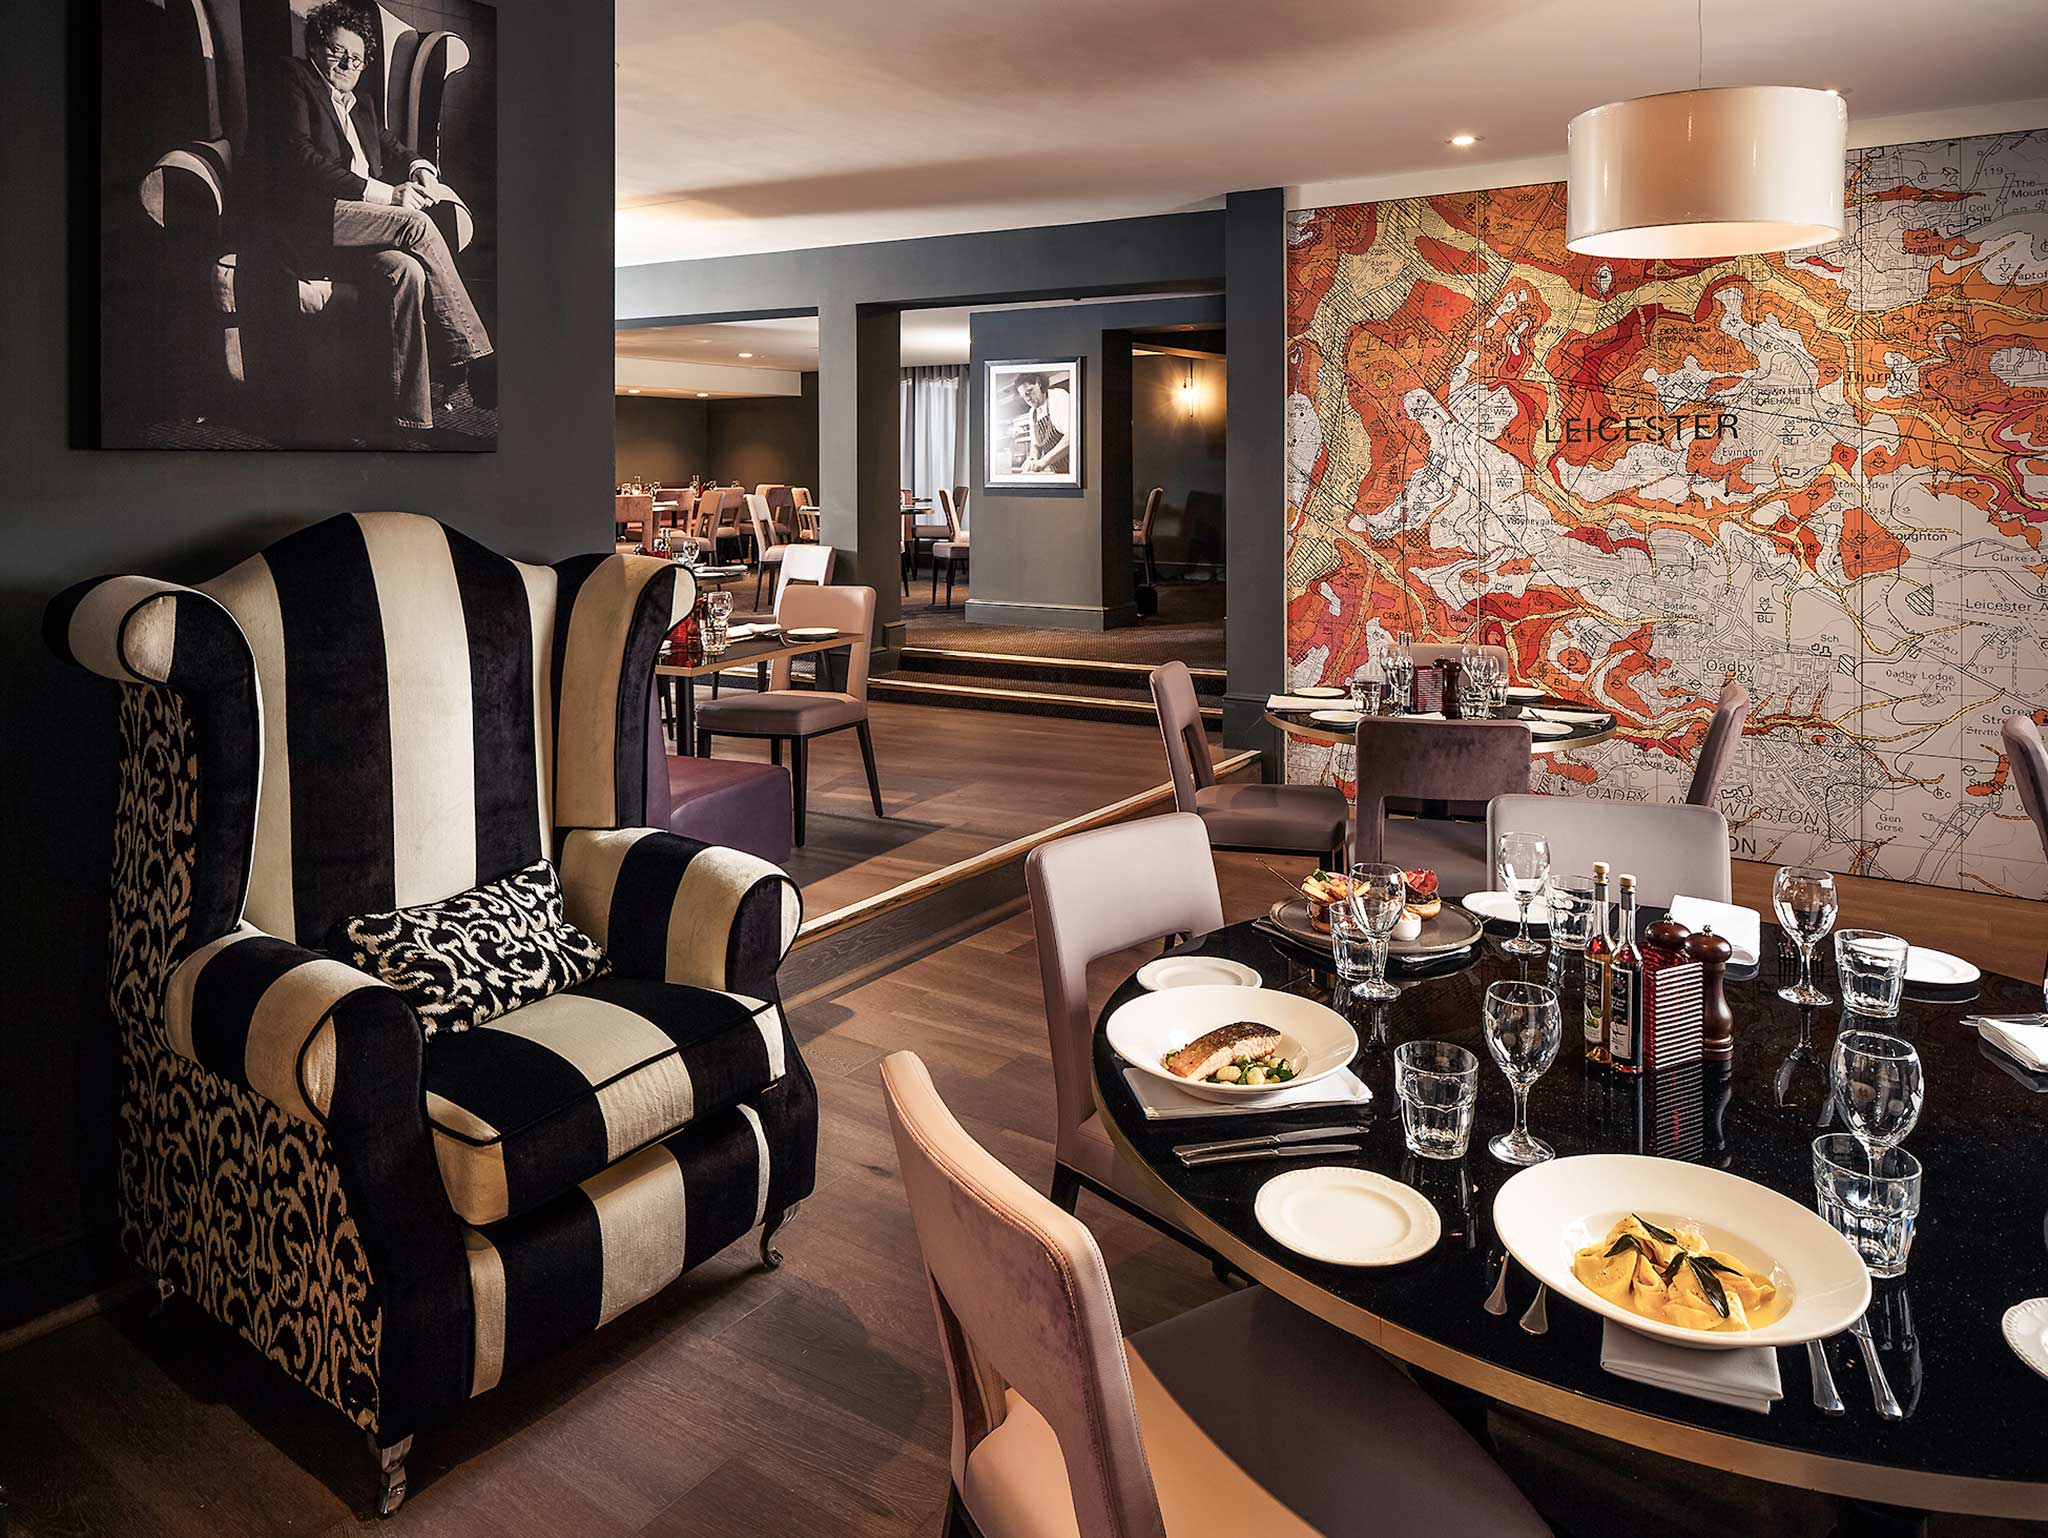 Mercure Leicester The Grand Hotel Gastronomie